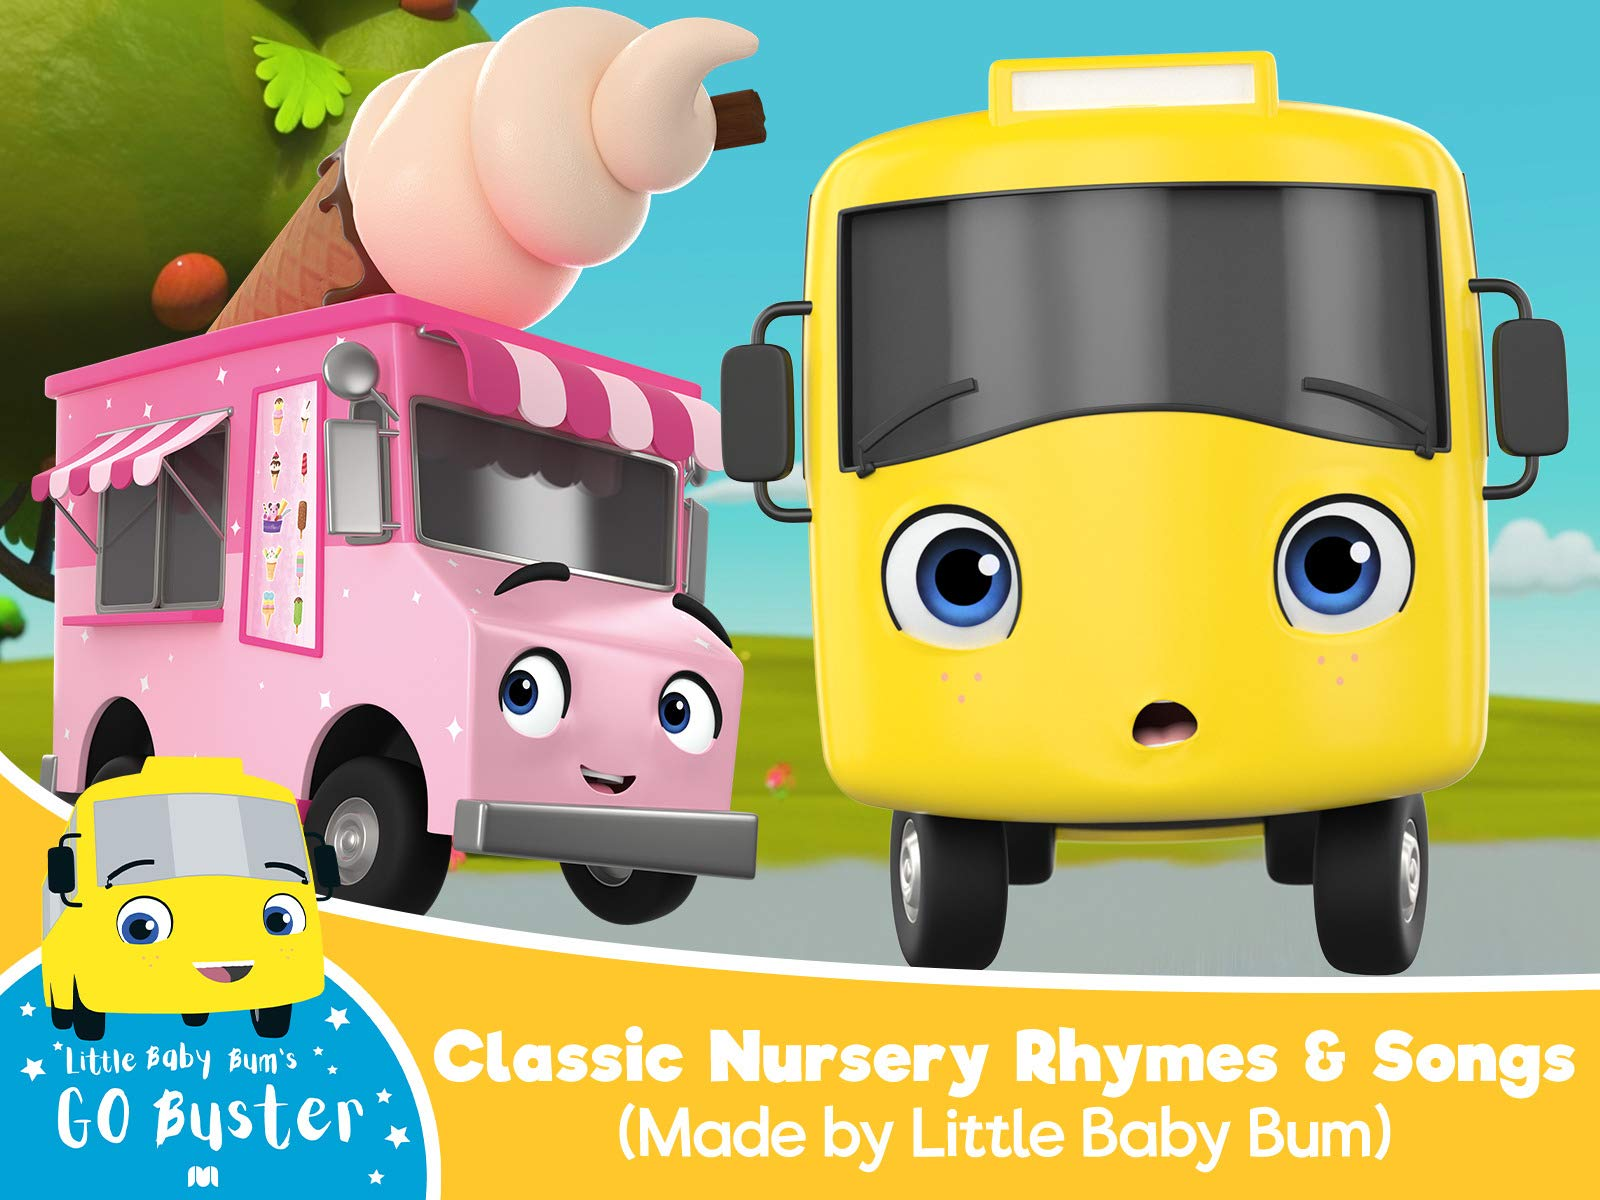 Go Buster - Classic Nursery Rhymes & Songs (Made by Little Baby Bum) - Season 3